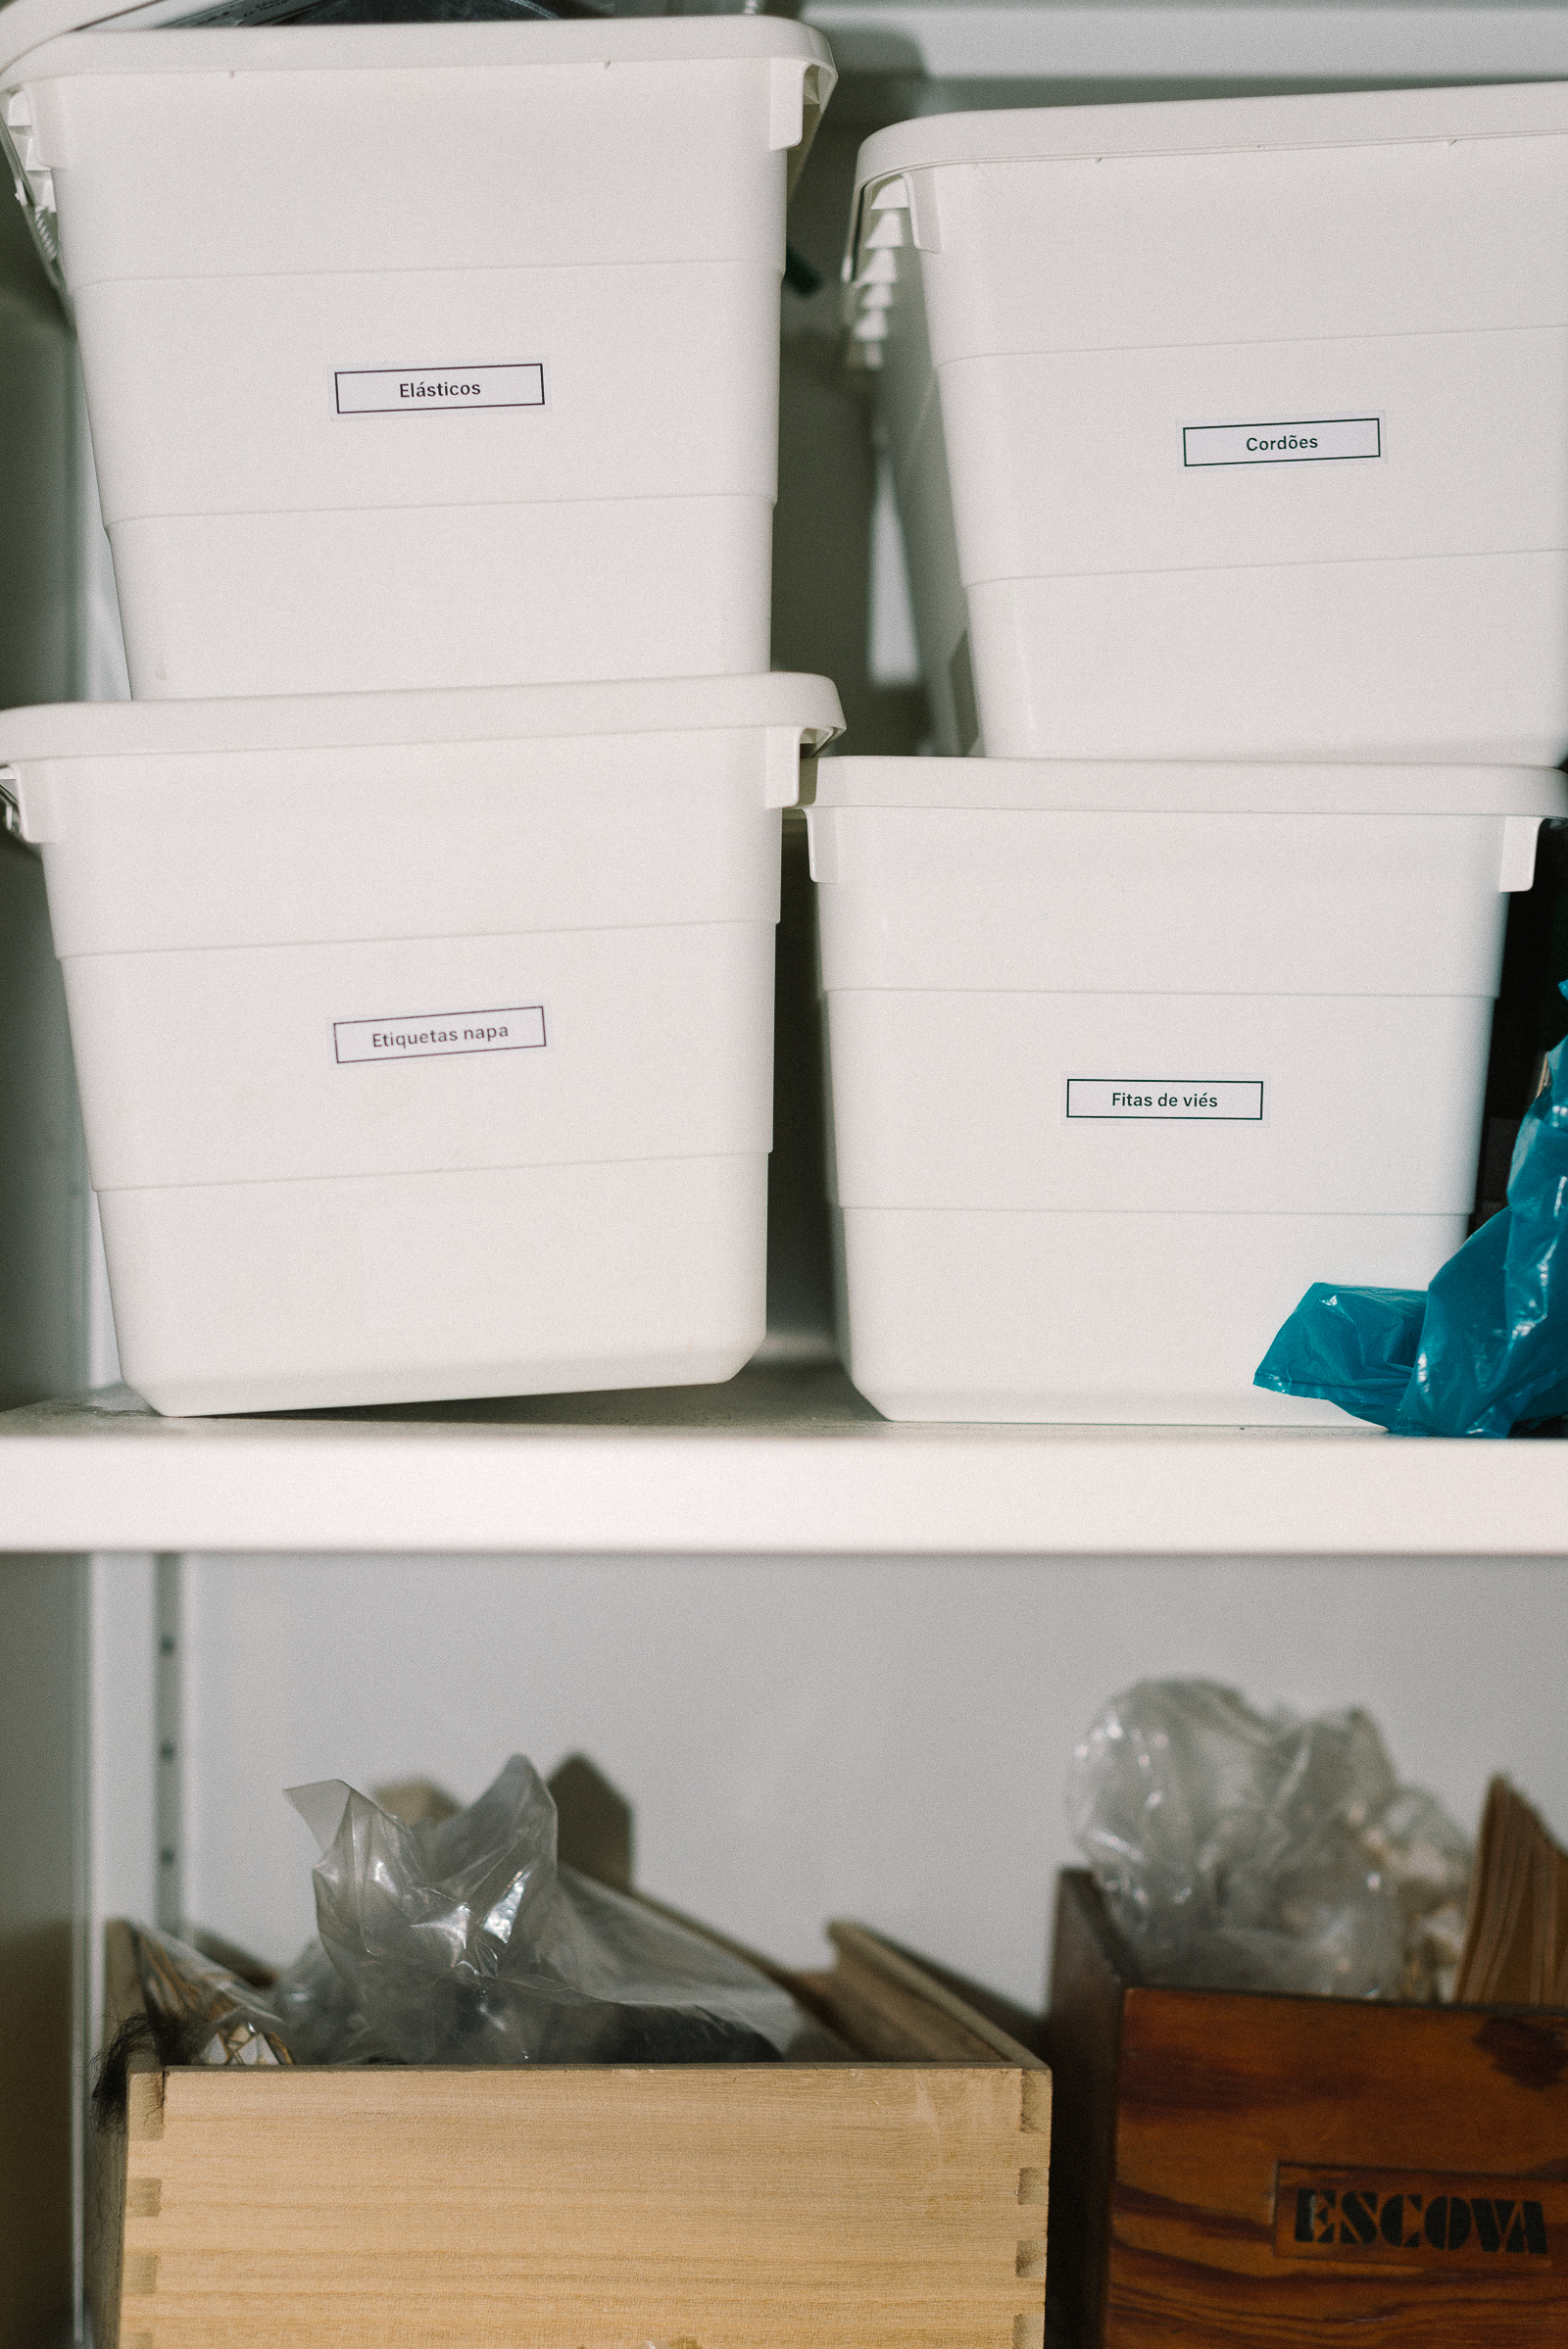 Labelled boxes with materials, a detail from wetheknot atelier